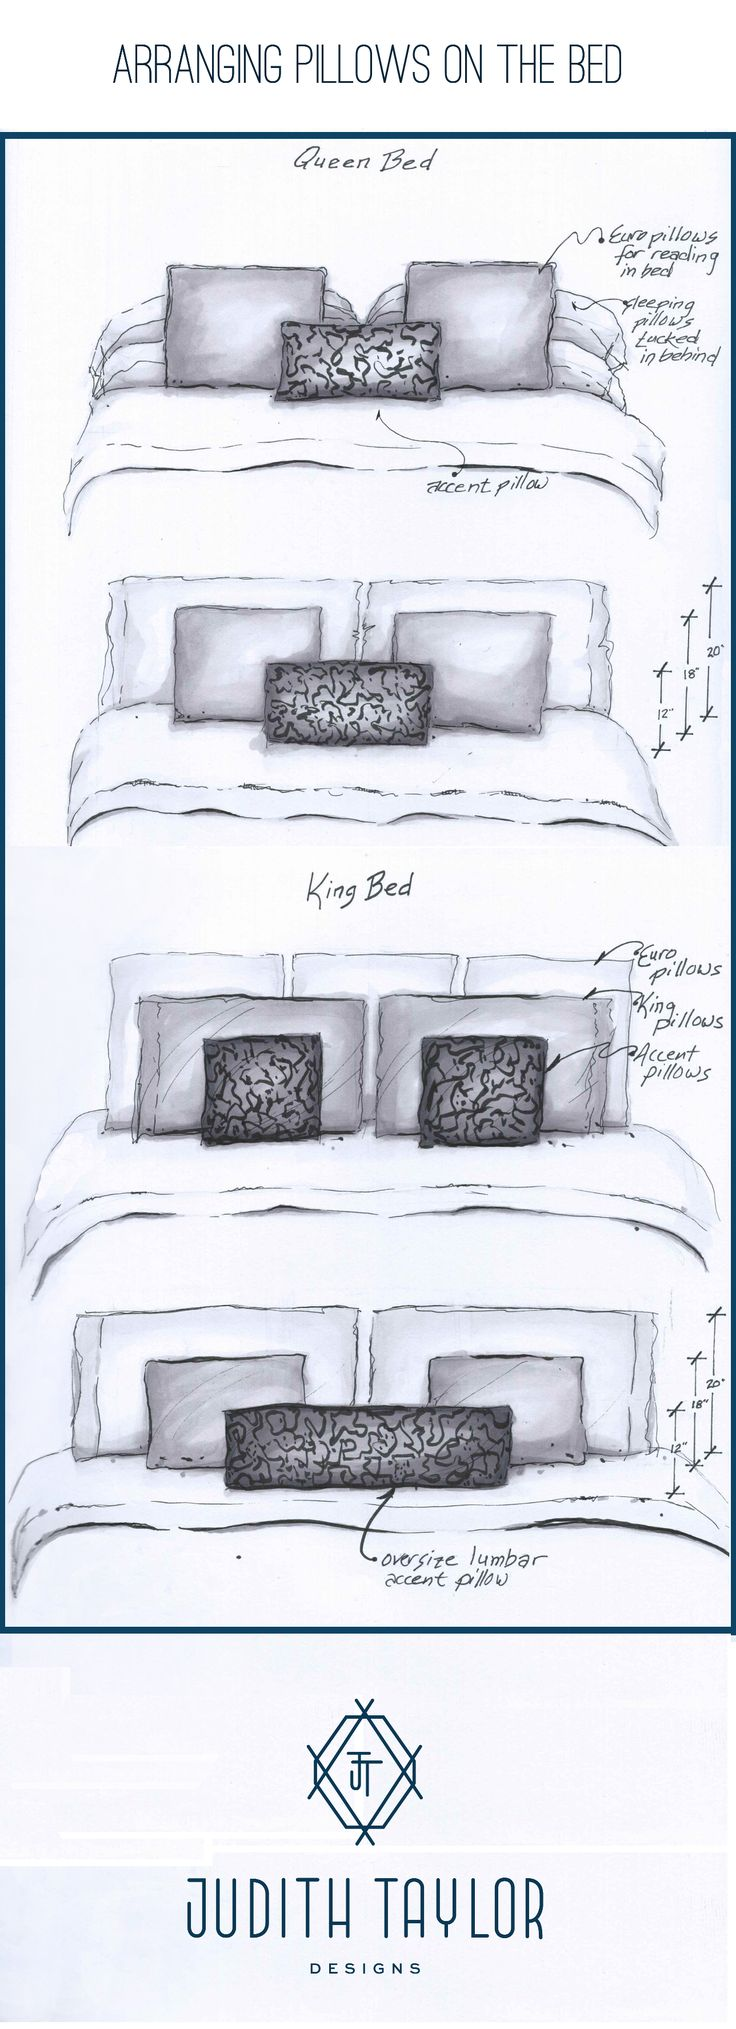 Arrangement And Sizing For Pillows On Queen King Bed Www Judithtaylordesigns The Home In 2018 Pinterest Bedroom Decor